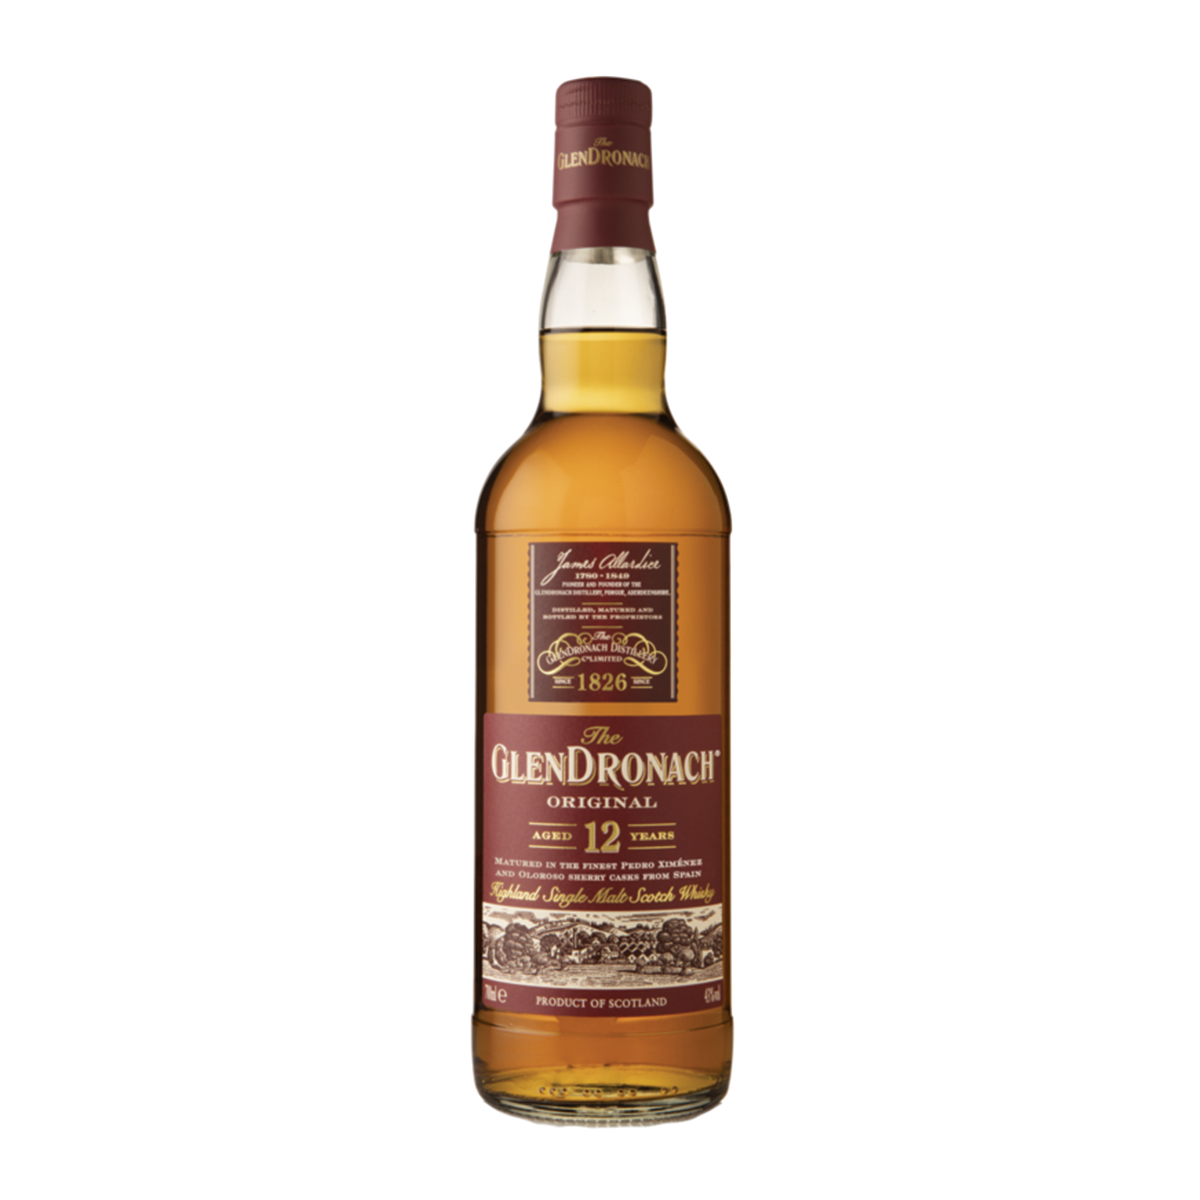 The Glendronach - 12 Years Highland Single Malt Scotch Whisky